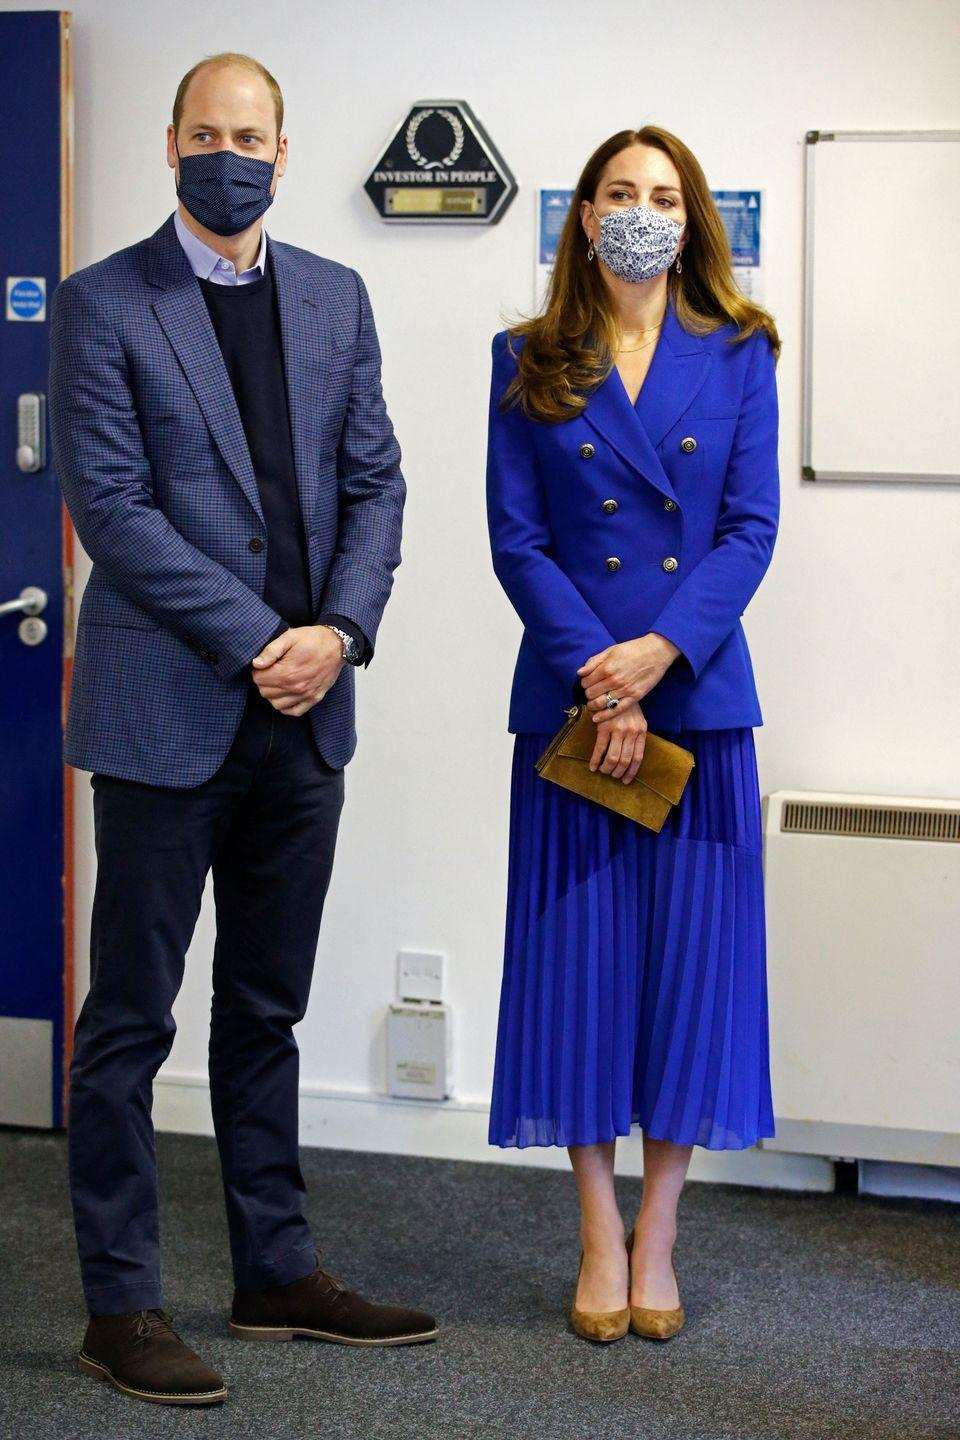 """<p>During Kate and Prince William's tour of Scotland, the Duchess wore an all-cobalt outfit. She paired a double-breasted Zara blazer with a <a href=""""https://go.redirectingat.com?id=74968X1596630&url=https%3A%2F%2Fhopefashion.co.uk%2Fcollections%2Fthe-collection%2Fproducts%2Fthe-contrast-hem-pleated-skirt-cobalt&sref=https%3A%2F%2Fwww.townandcountrymag.com%2Fstyle%2Ffashion-trends%2Fnews%2Fg1633%2Fkate-middleton-fashion%2F"""" rel=""""nofollow noopener"""" target=""""_blank"""" data-ylk=""""slk:midi skirt from British brand, Hope"""" class=""""link rapid-noclick-resp"""">midi skirt from British brand, Hope</a>, and carried <a href=""""https://us.metierlondon.com/products/roma-mini-clutch-bag-suede-marrakech"""" rel=""""nofollow noopener"""" target=""""_blank"""" data-ylk=""""slk:a Métier clutch"""" class=""""link rapid-noclick-resp"""">a Métier clutch</a>. </p>"""